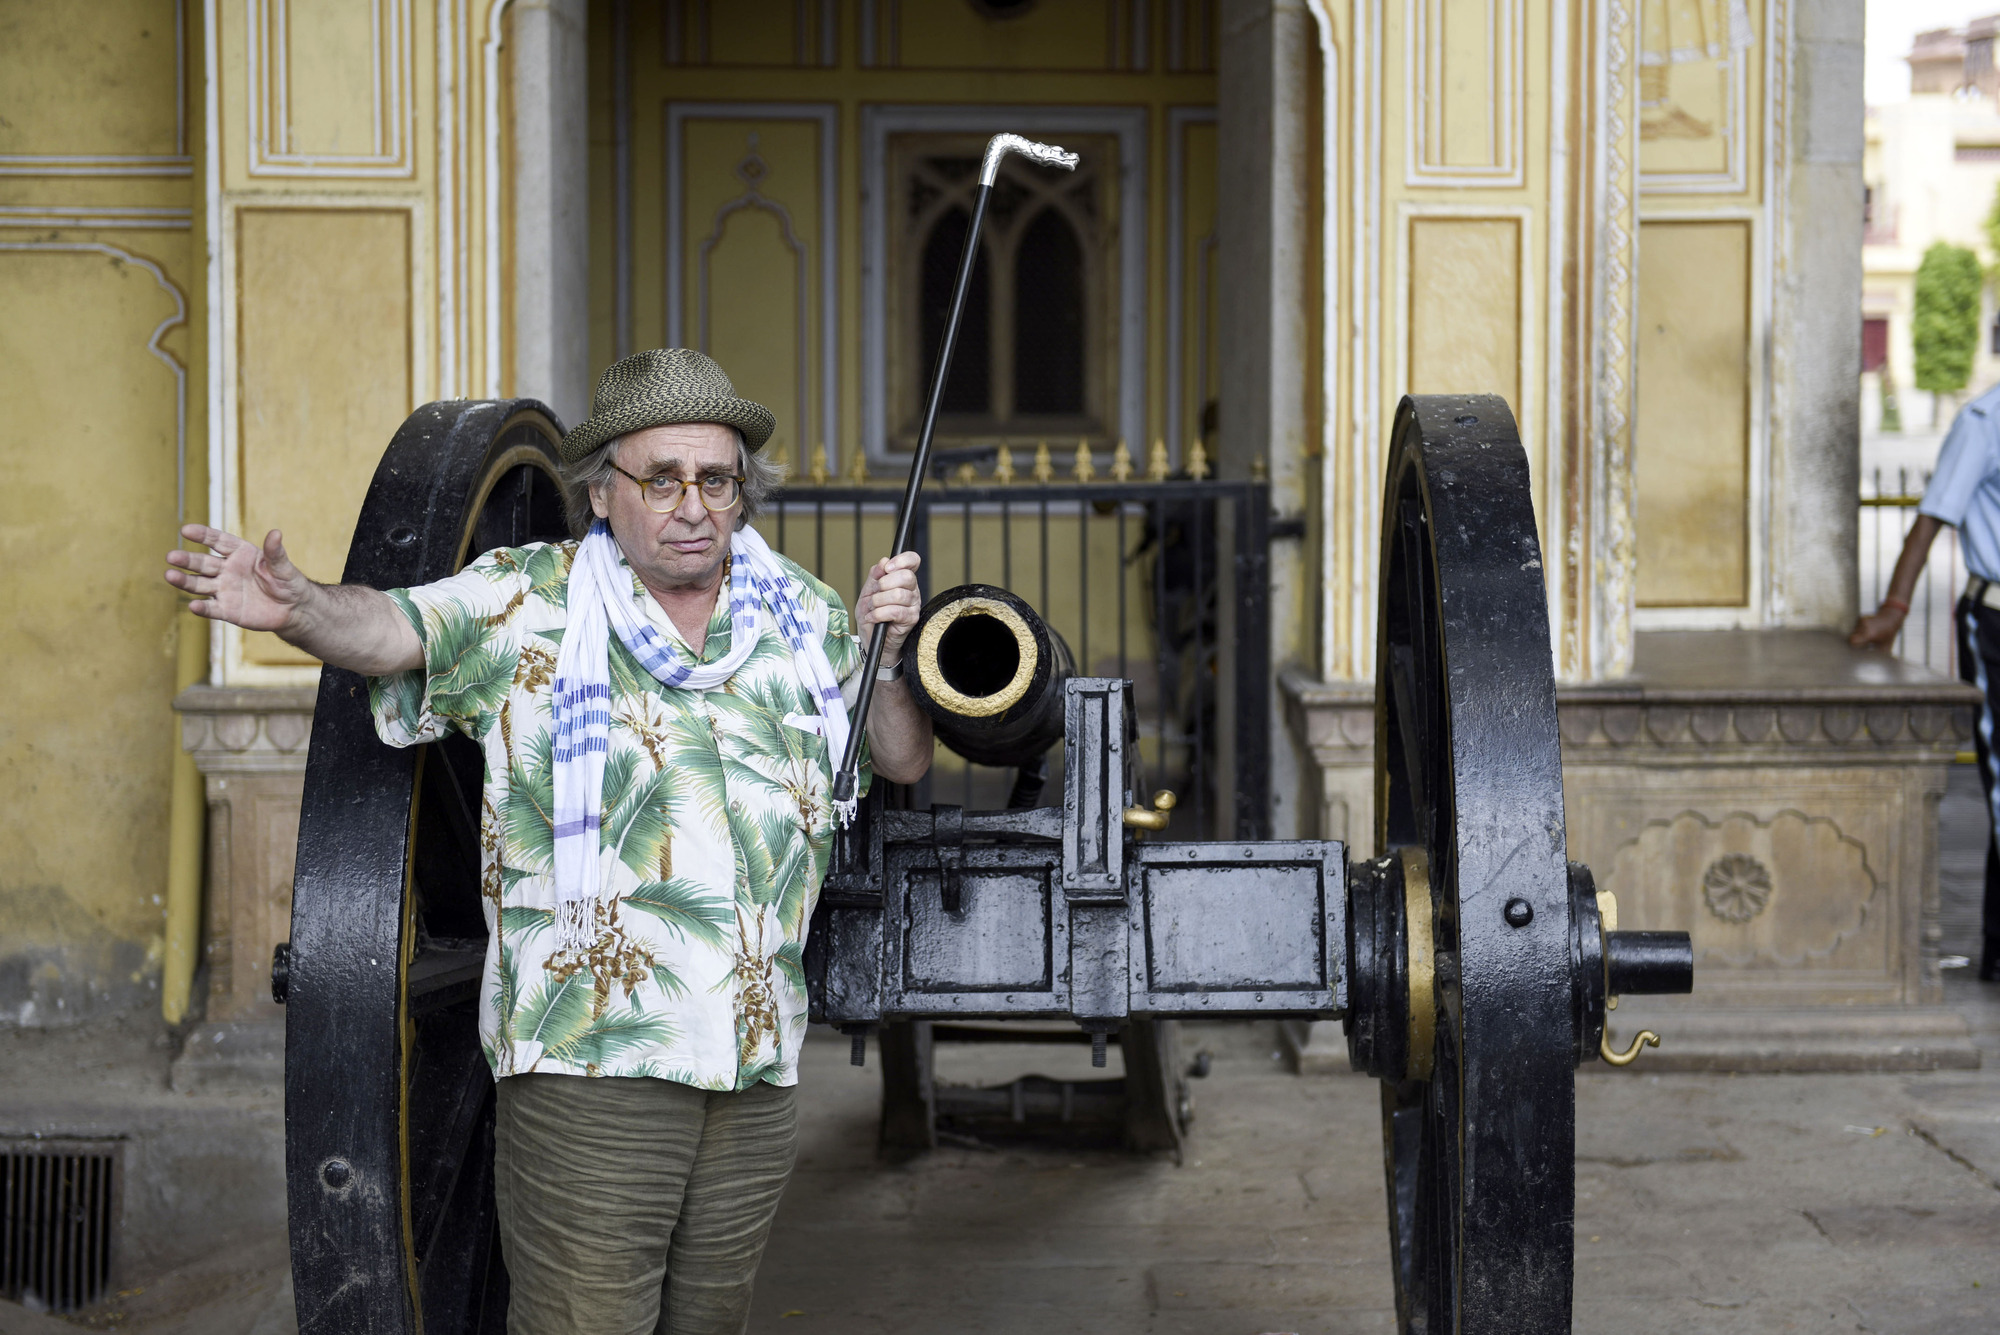 Programme Name: The Real Marigold Hotel - TX: n/a - Episode: The Real Marigold Hotel (No. n/a) - Picture Shows: City Palace Sylvester McCoy - (C) Vinod Singh/Twofour - Photographer: Vinod Singh